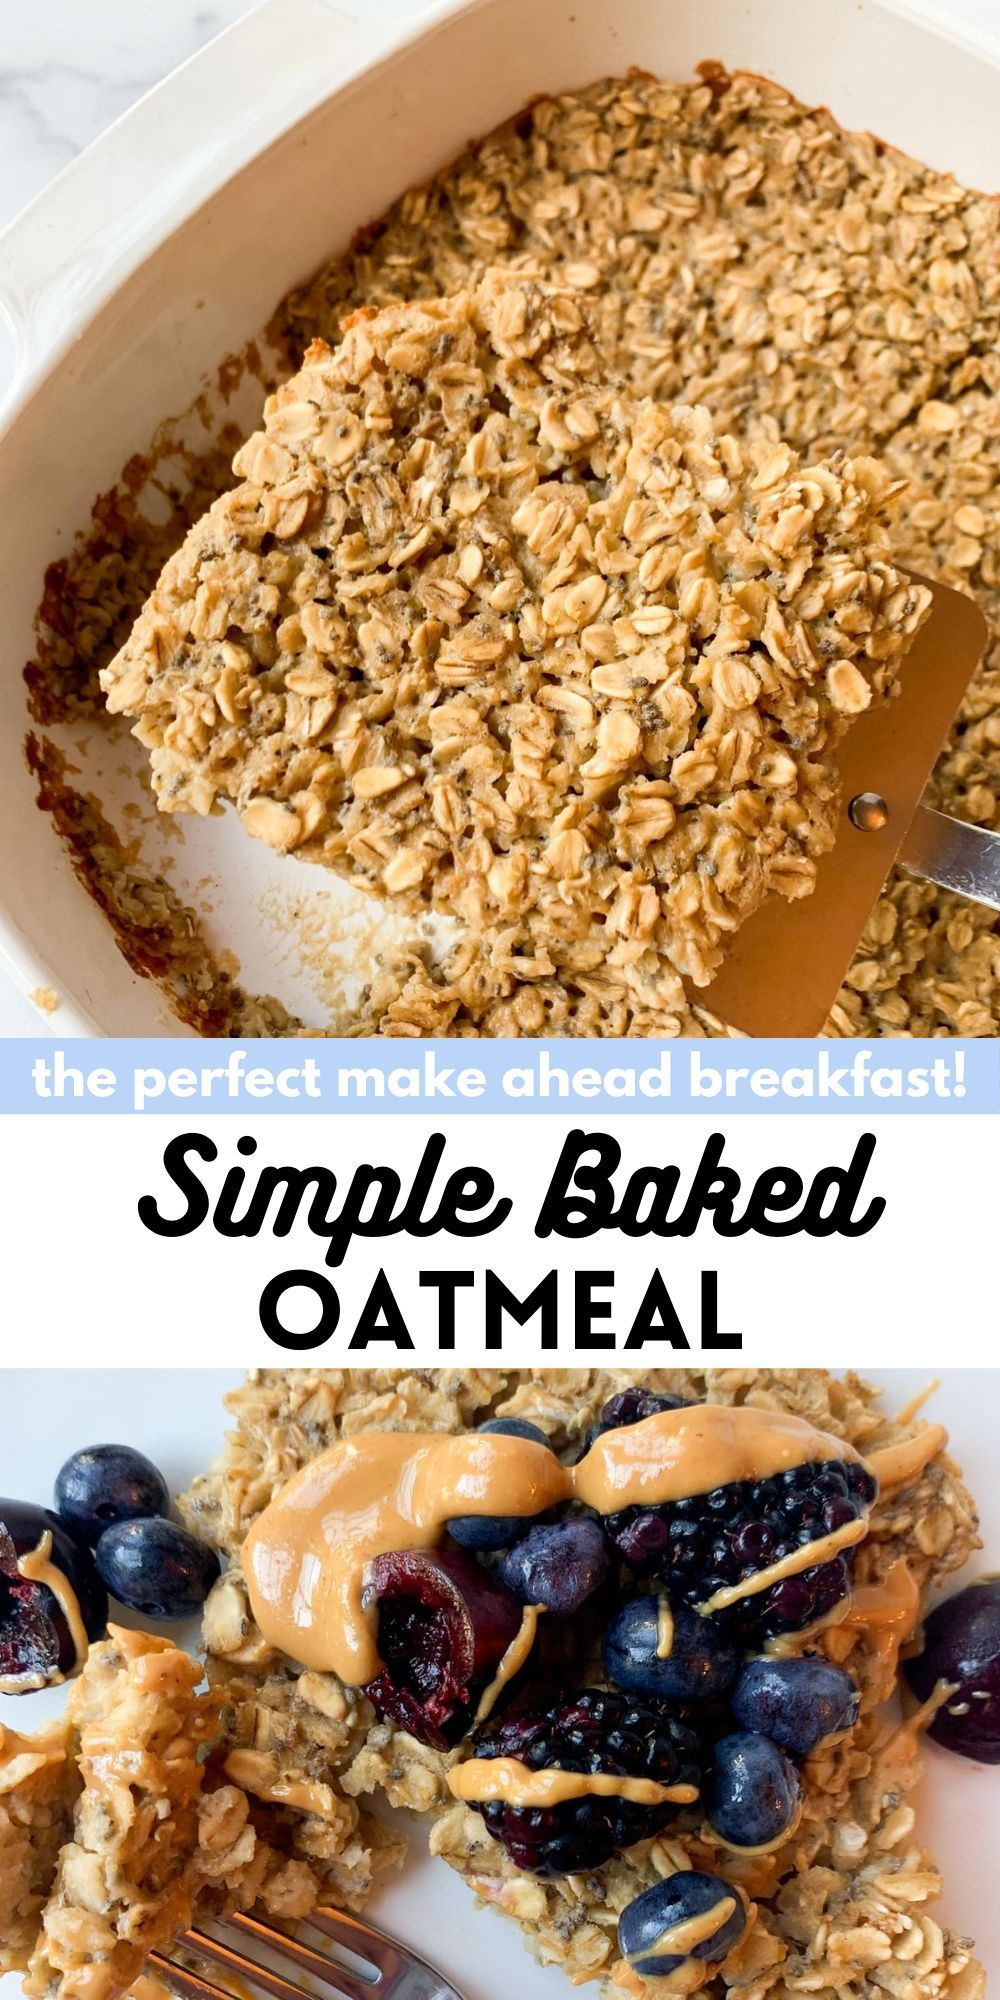 Simple Baked Oatmeal Wellness By Kay Recipe Breakfast Recipes Easy Healthy Breakfast Recipes Easy Breakfast Recipes